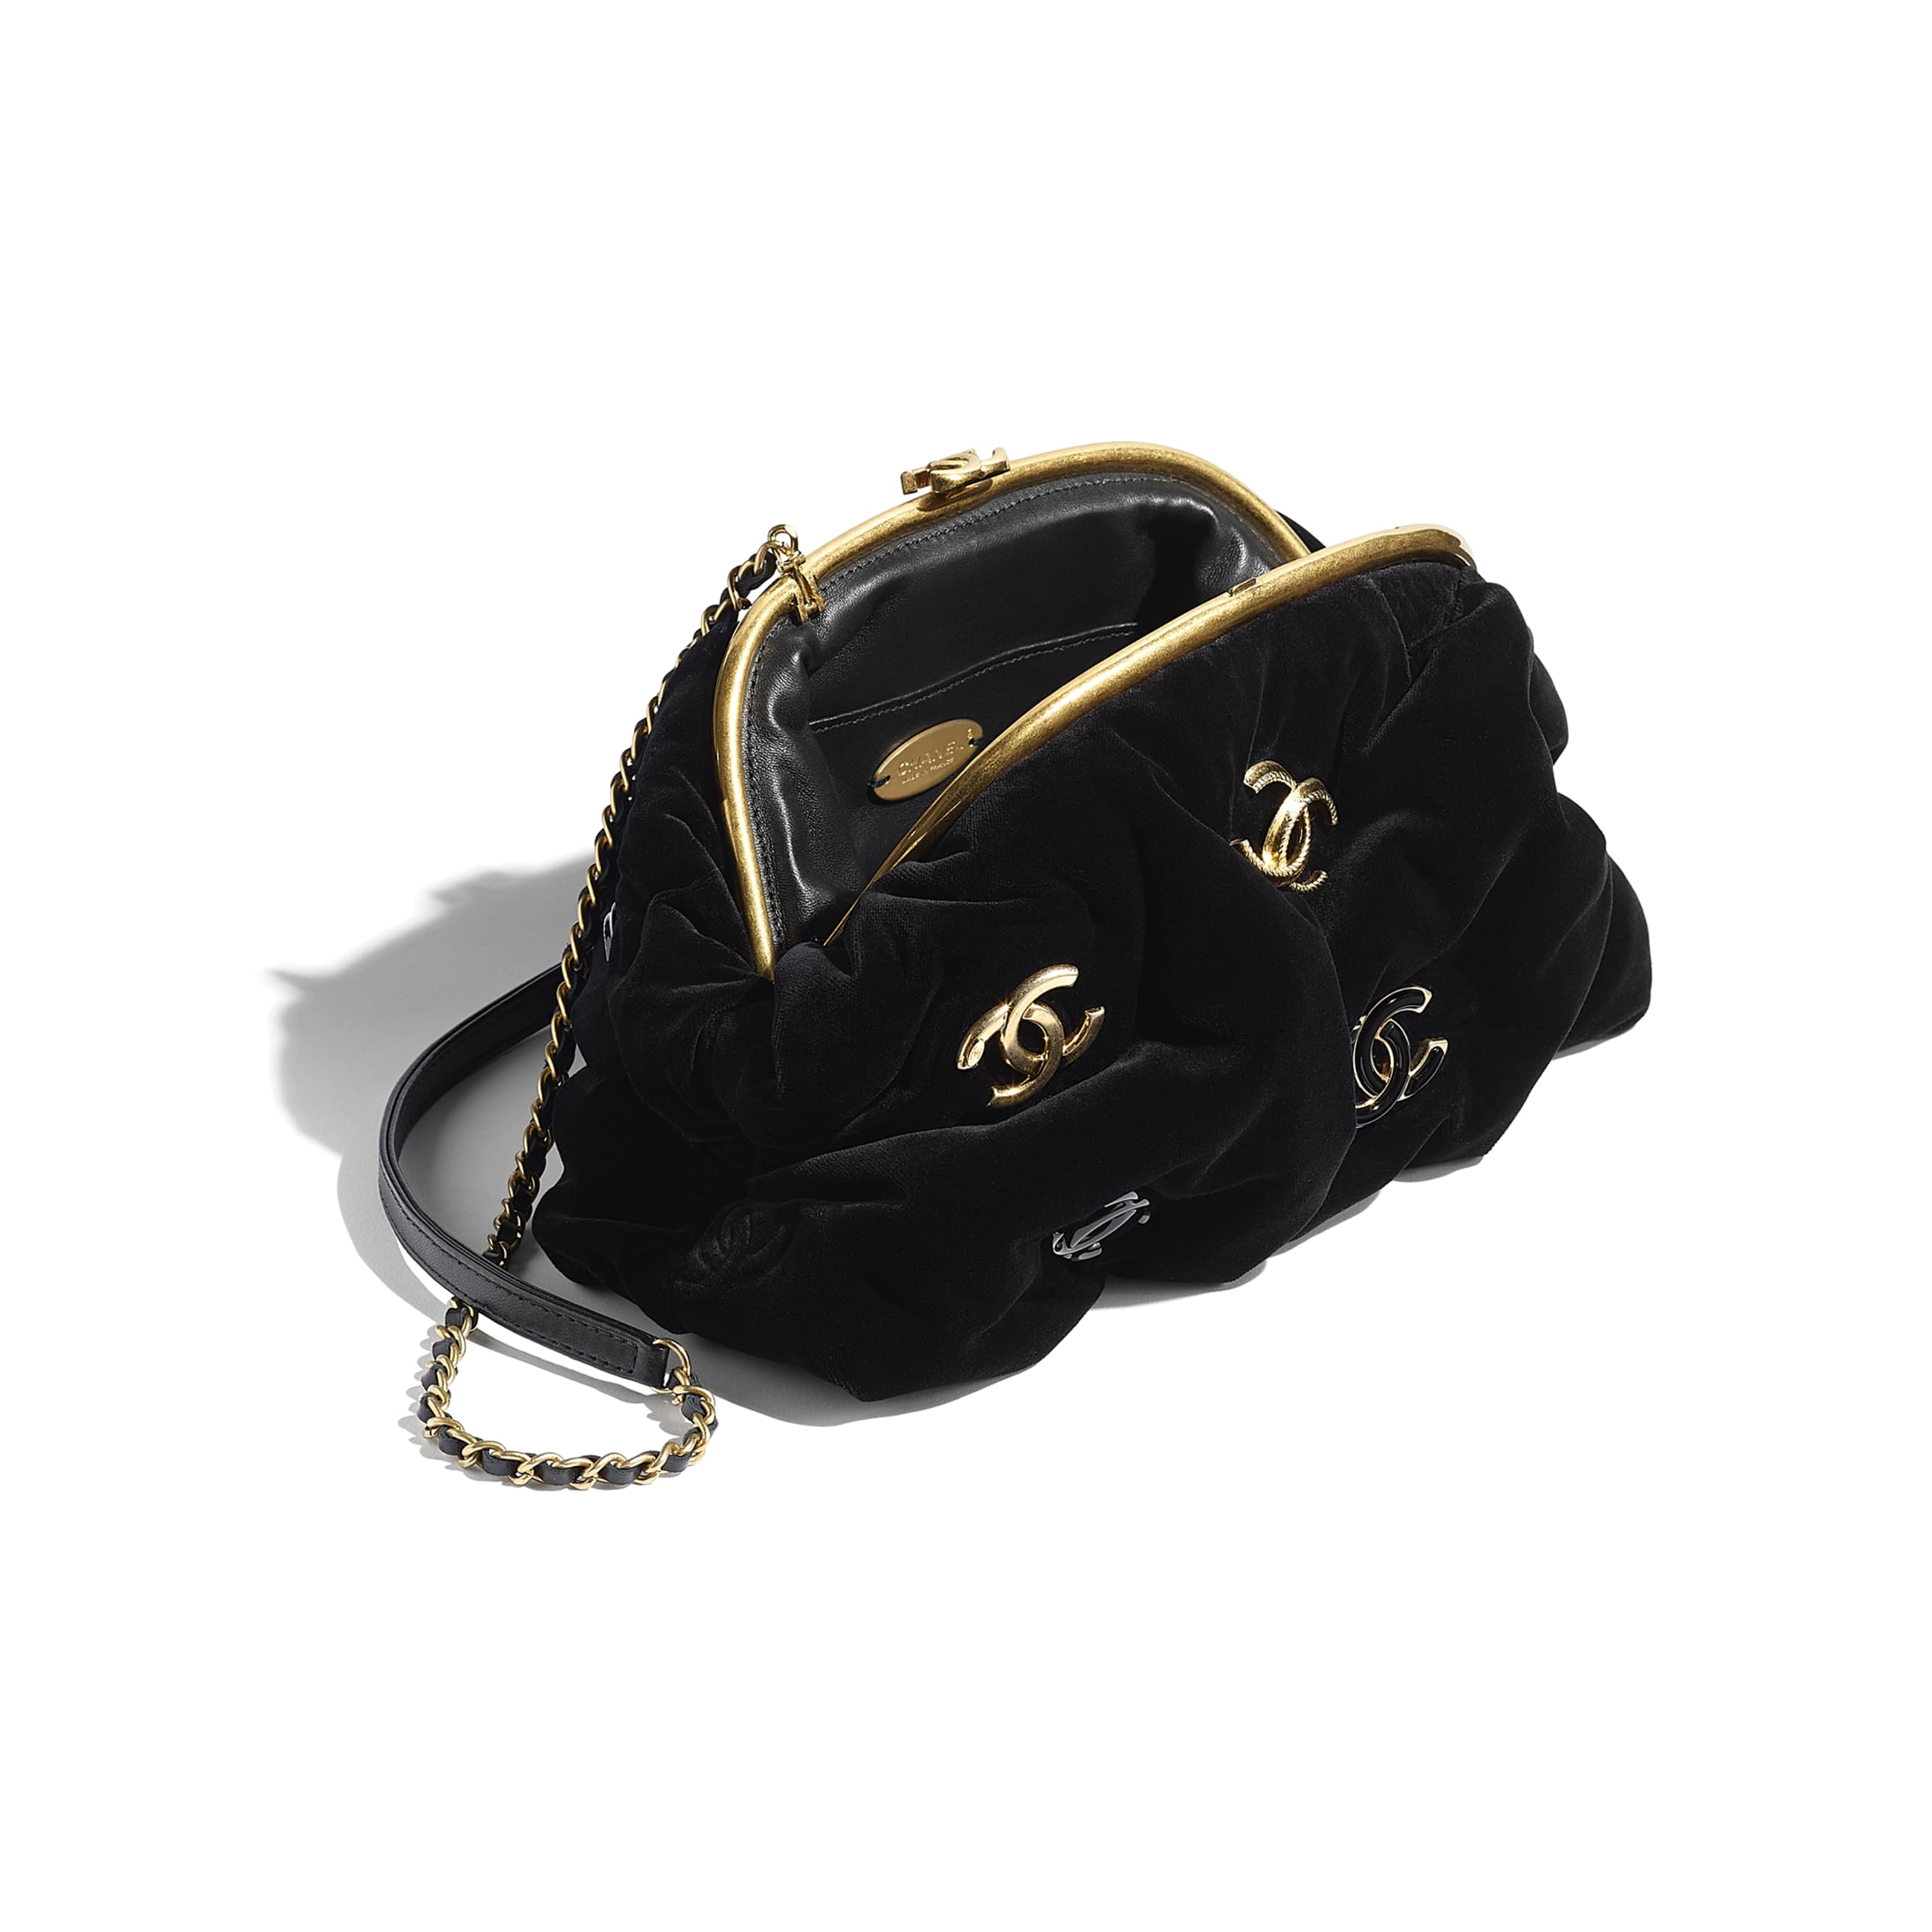 Clutch - Black - Velvet, Black & Gold-Tone Metal - CHANEL - Other view - see standard sized version